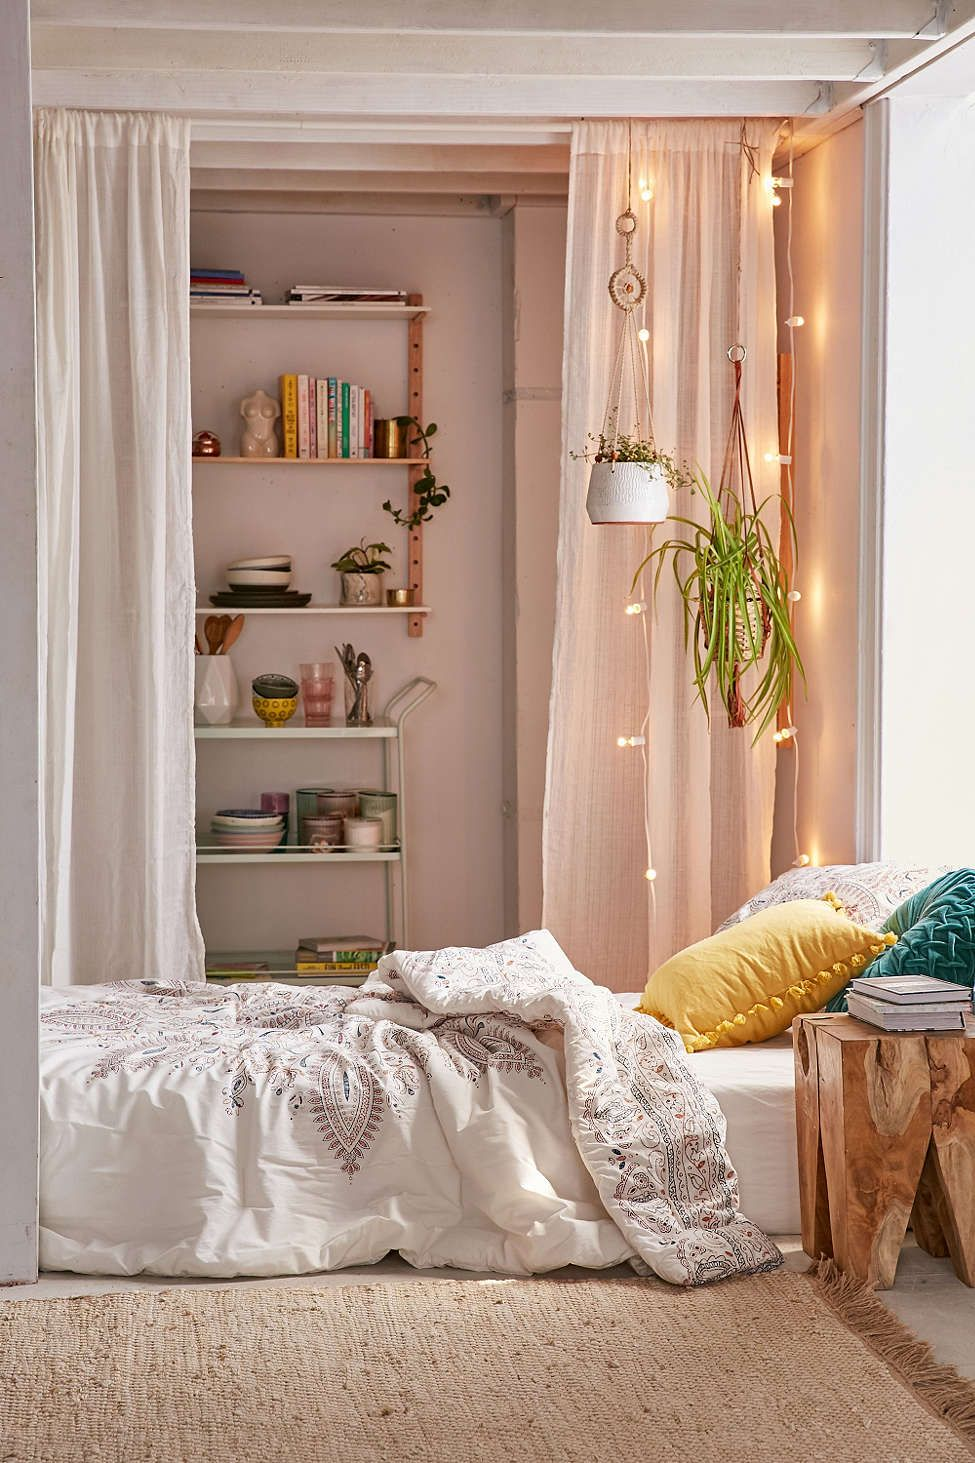 halina folk floral comforter urban outfitters bedroom pinterest floral comforter. Black Bedroom Furniture Sets. Home Design Ideas